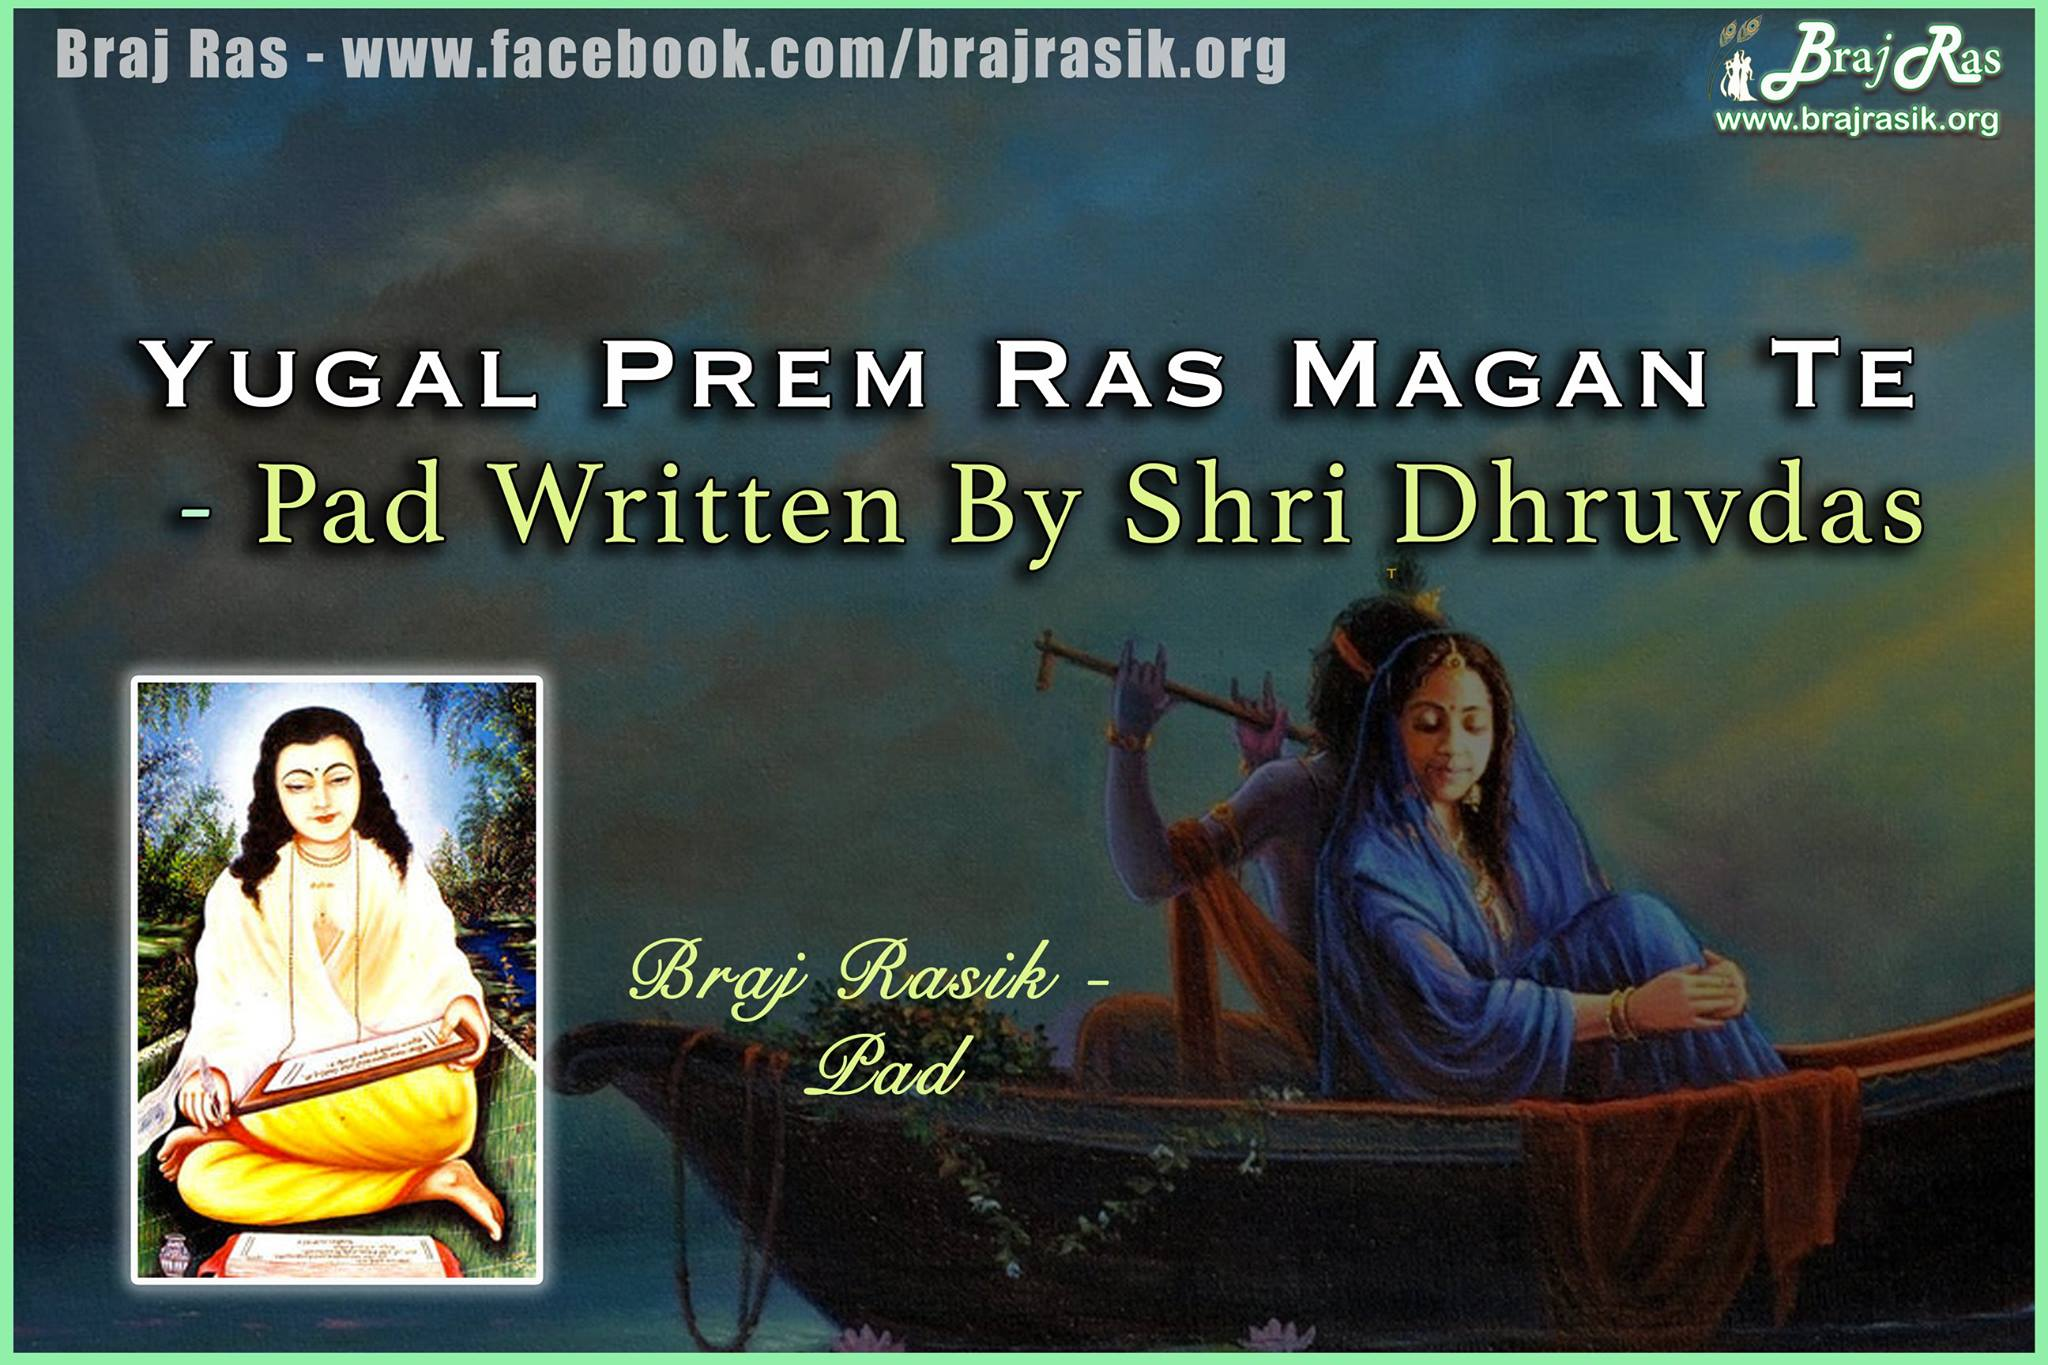 Yugal Prem Ras Magan Te - Pad Written By Shri Dhruvdas